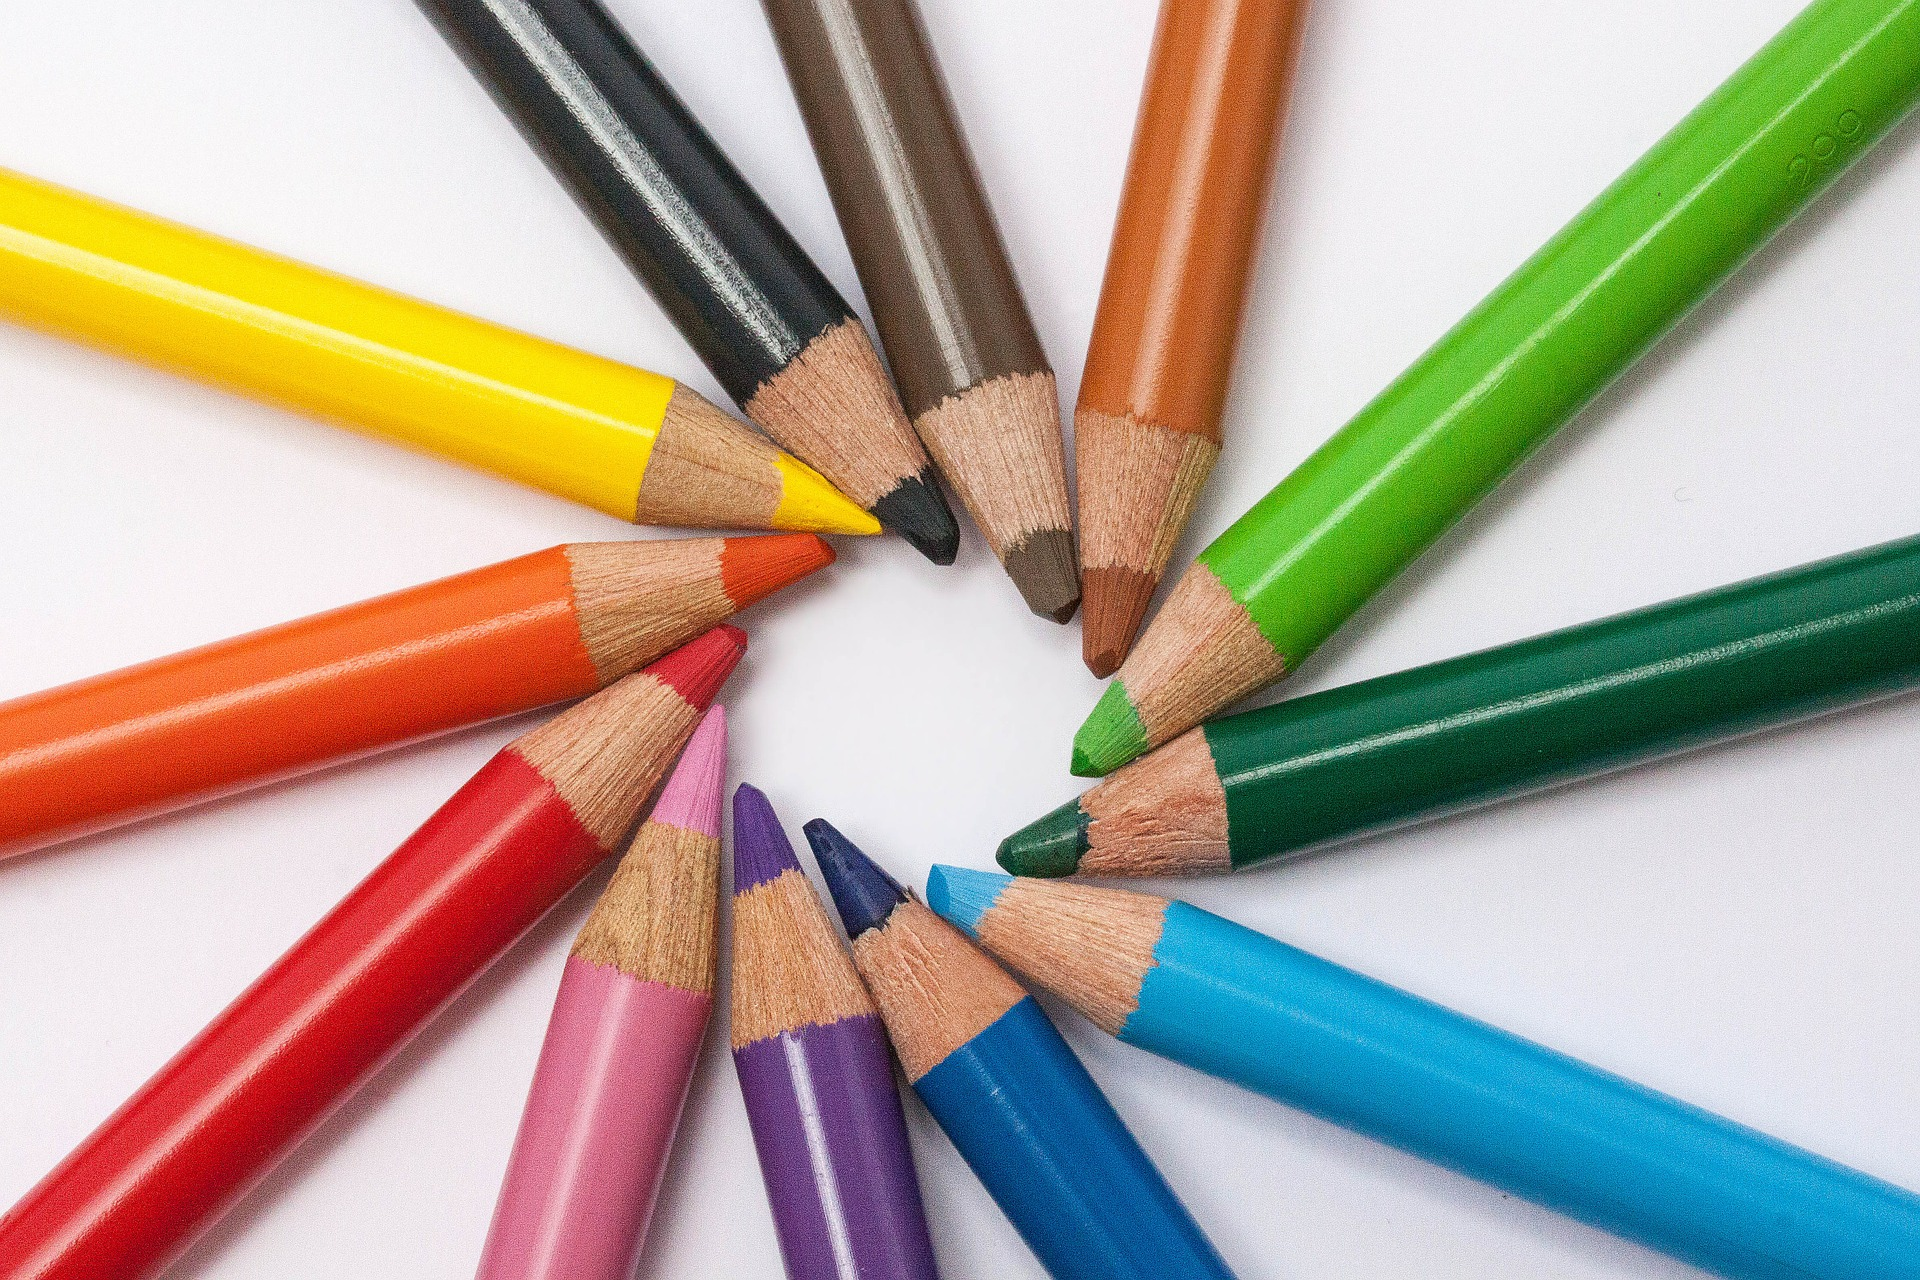 array of colored pencils on a table